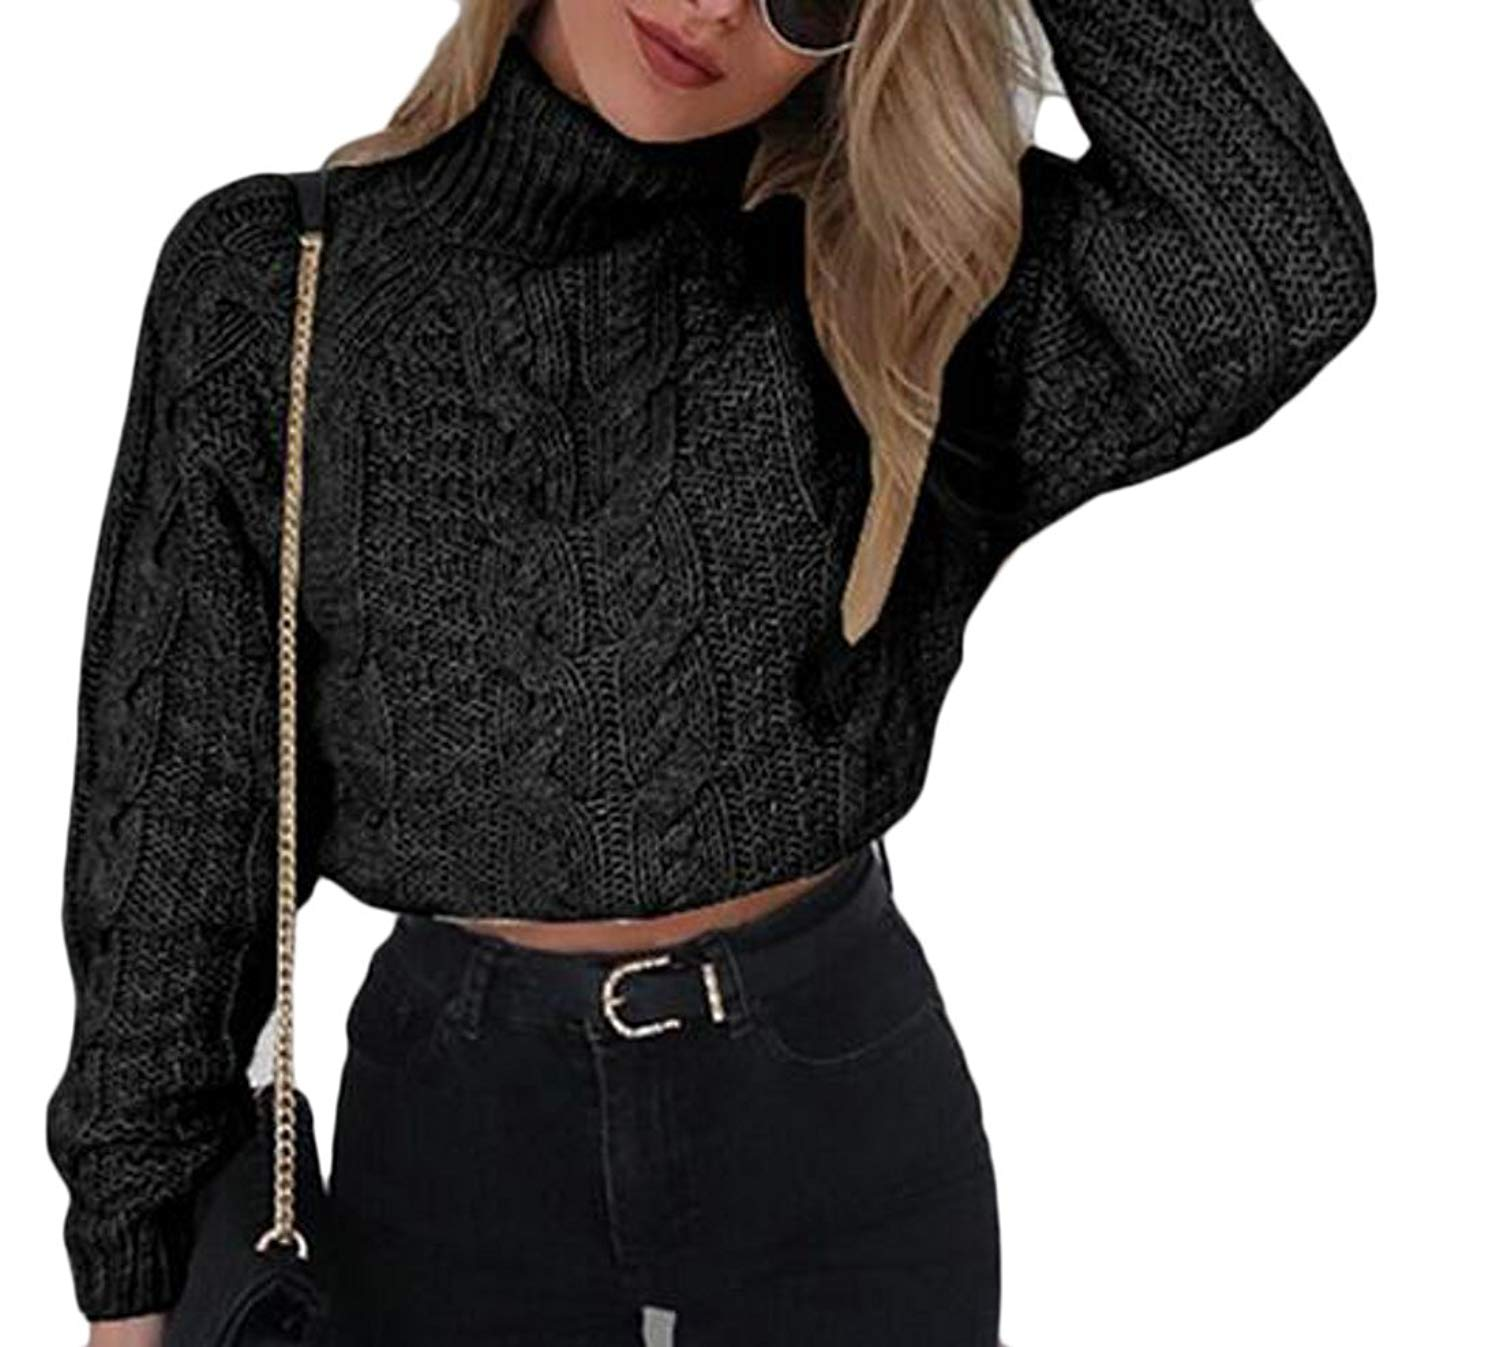 4e603bb810a0e5 Get Quotations · WSPLYSPJY Women s Knit Turtleneck Sweater Crop Top Ribbed  Halter Neck Pullover Black L